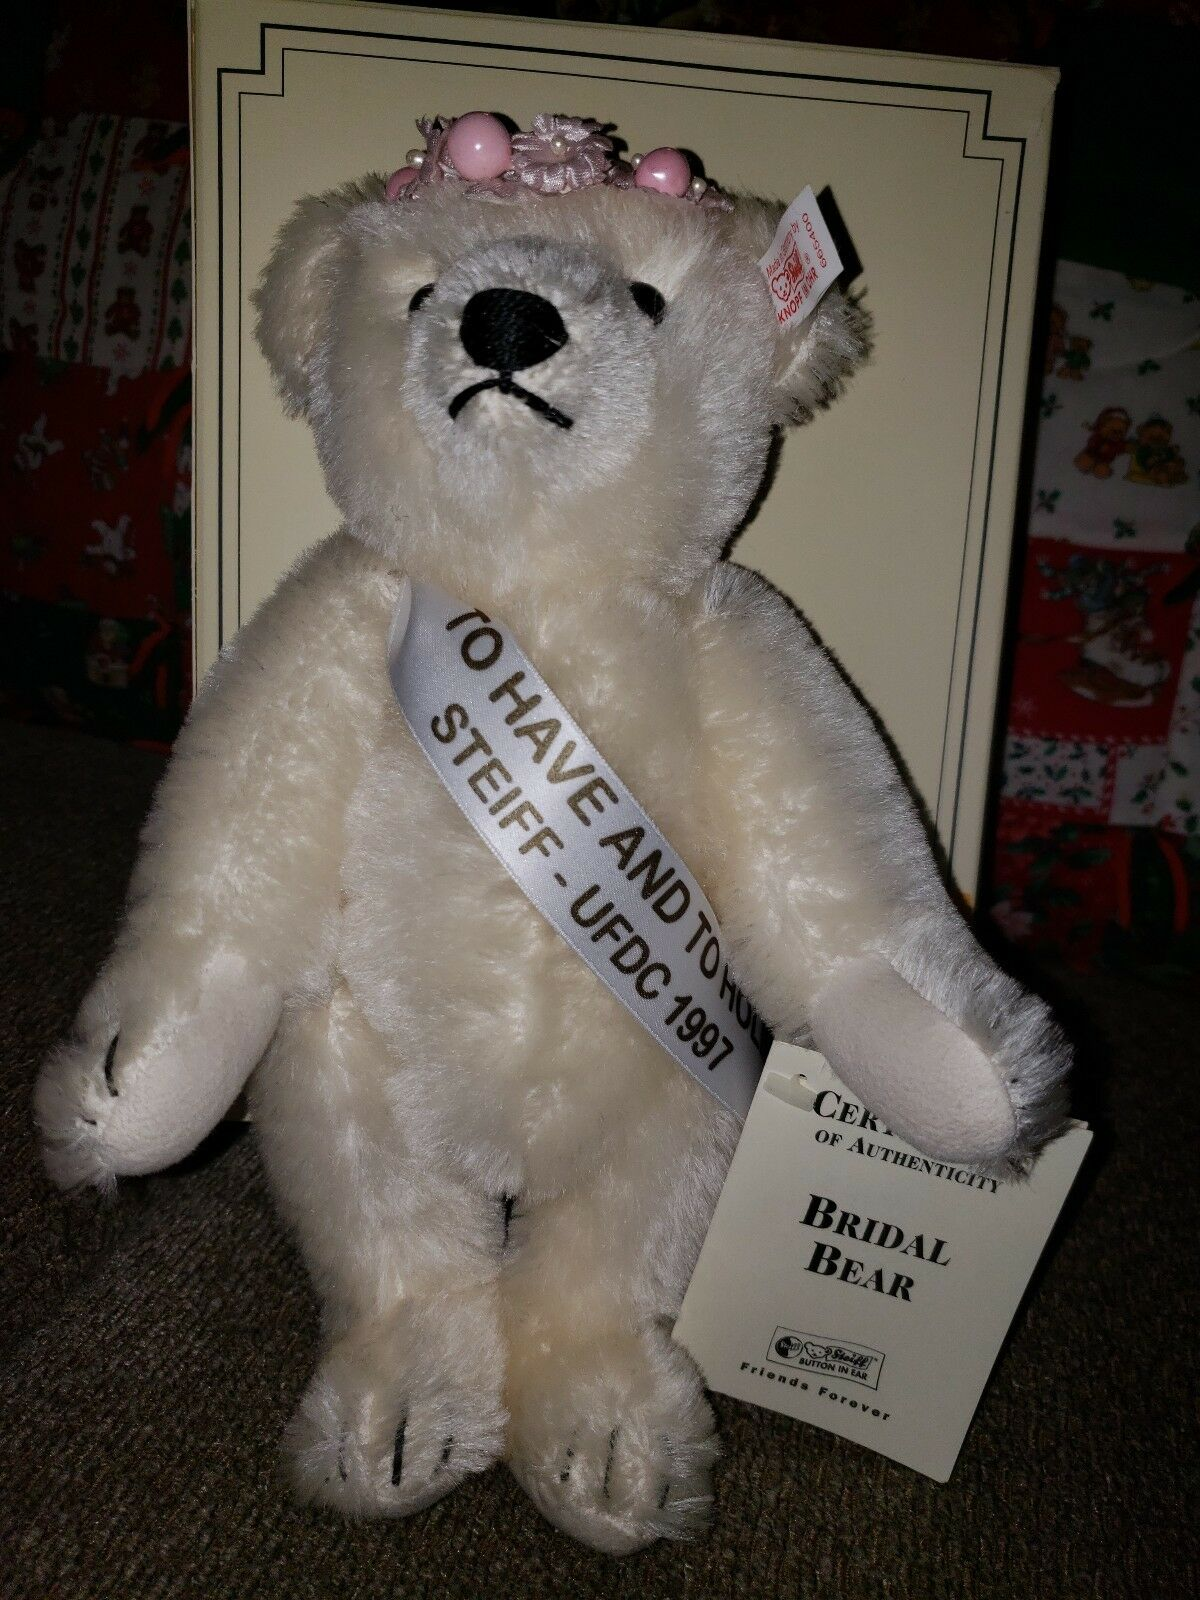 Steiff Bridal Bear 1997 LTD Ed #363 of 365  To have and to hold. SIGNED ON FOOT